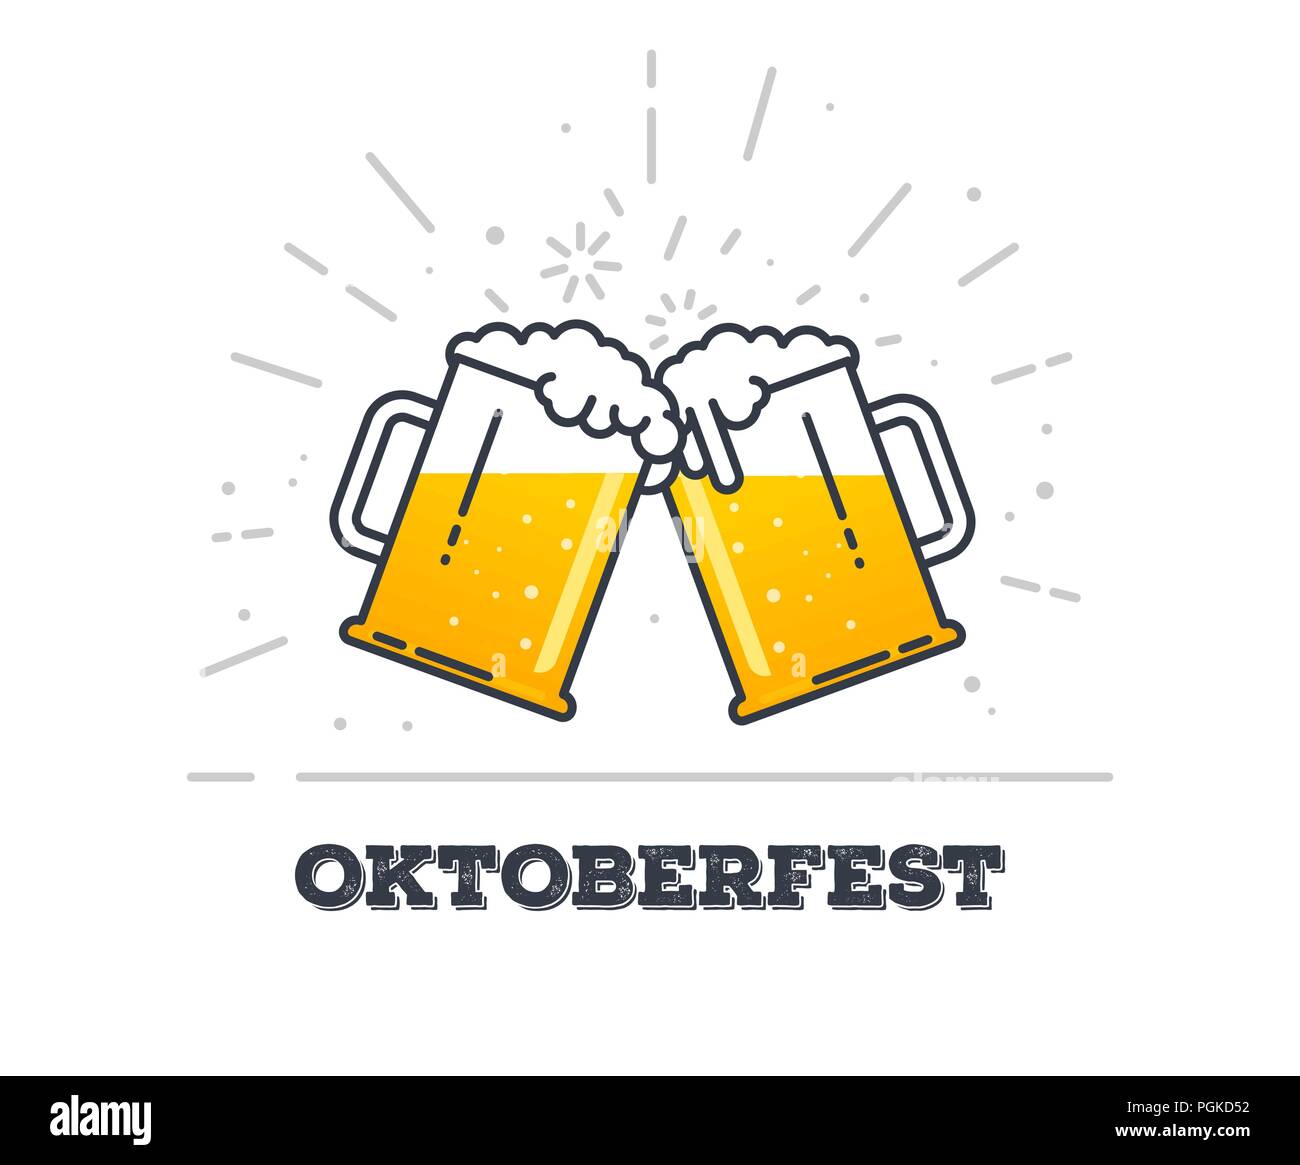 October fest concept. Two gig glasses with fresh yellow live beer and white foam, and bubbles. Line style flat vector illustration. Beer festival conc - Stock Image